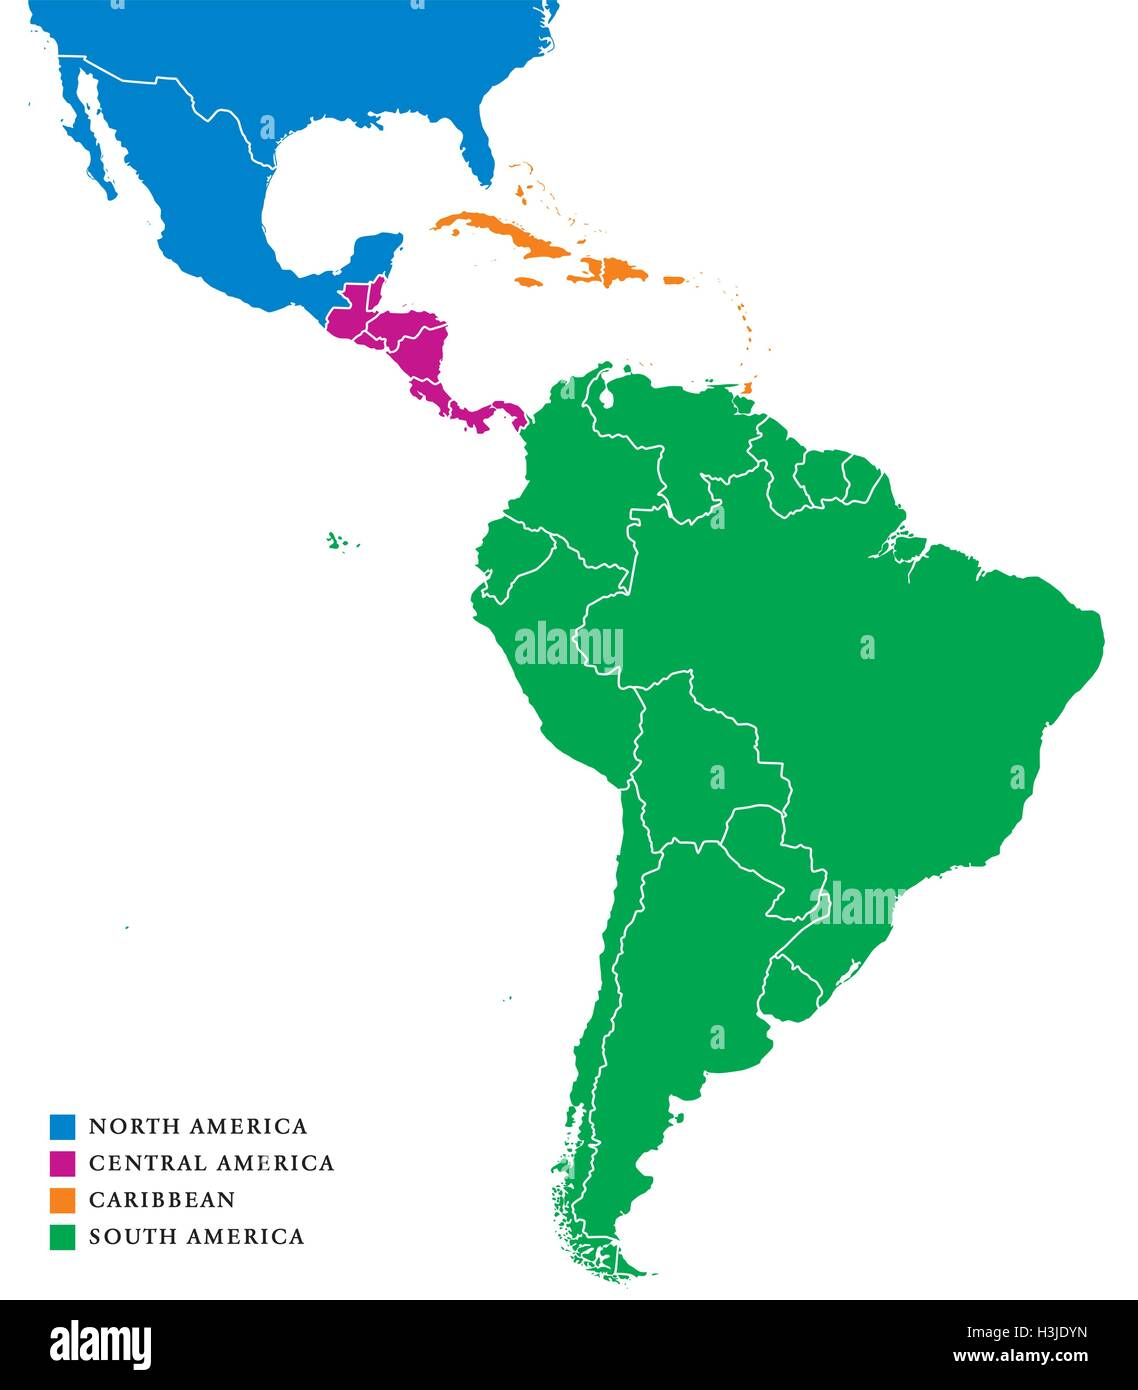 Latin America Subregions Map The Subregions Caribbean